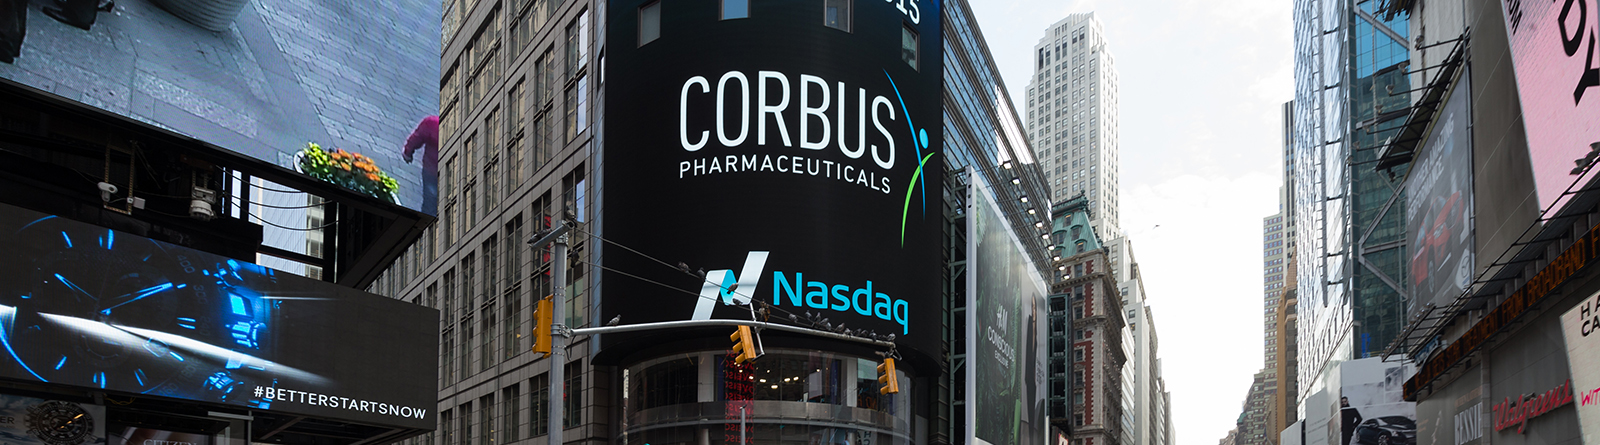 Corbus Pharmaceuticals Reports 2017 First Quarter Financial Results and Provides Business Update Banner